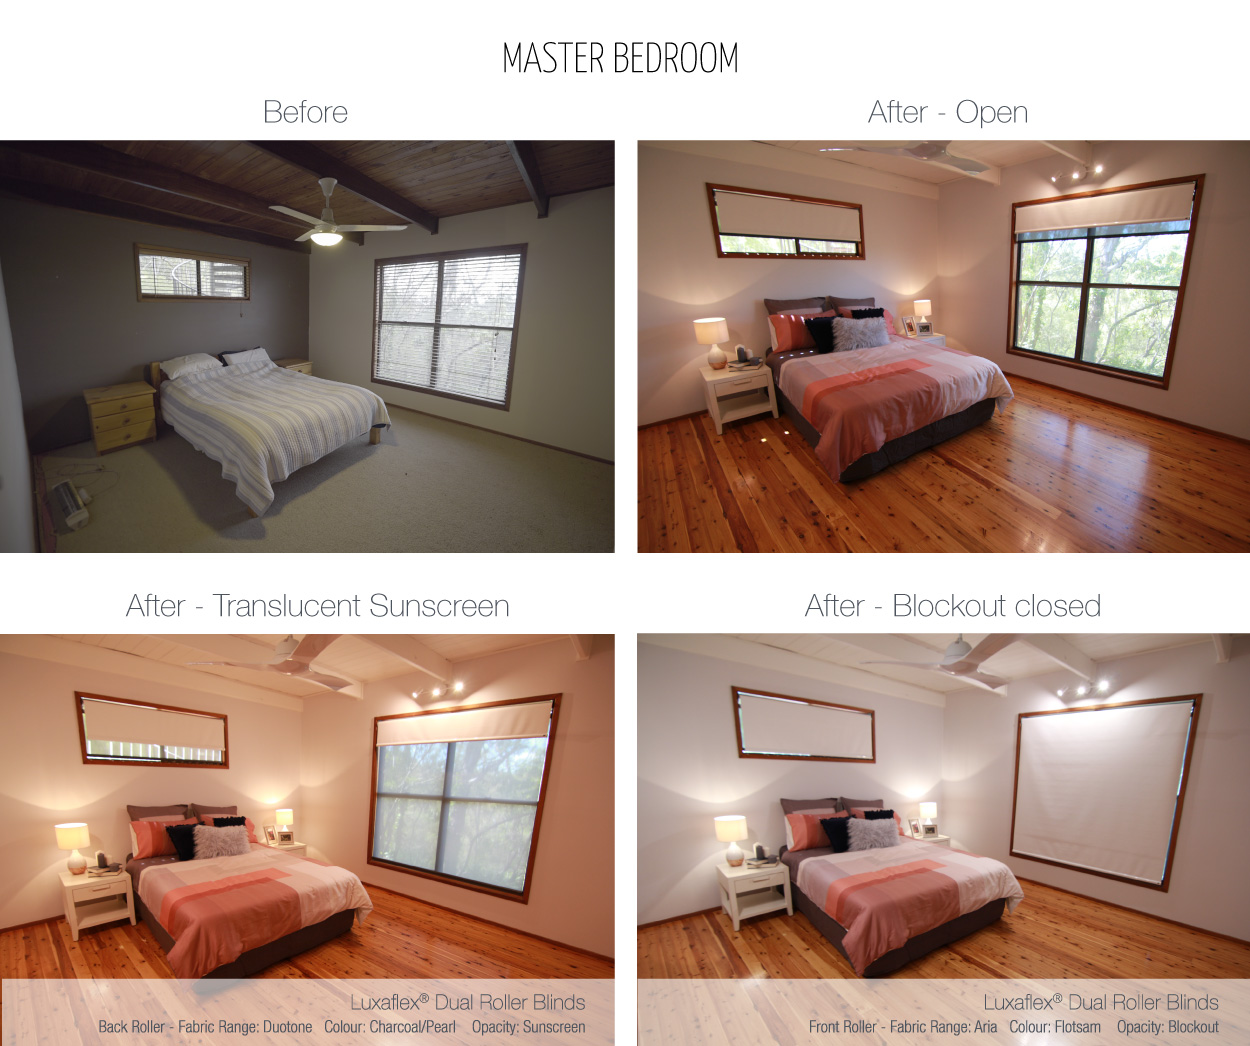 Luxaflex - Blog - Selling Houses Australia - EP13 - Master Bedroom